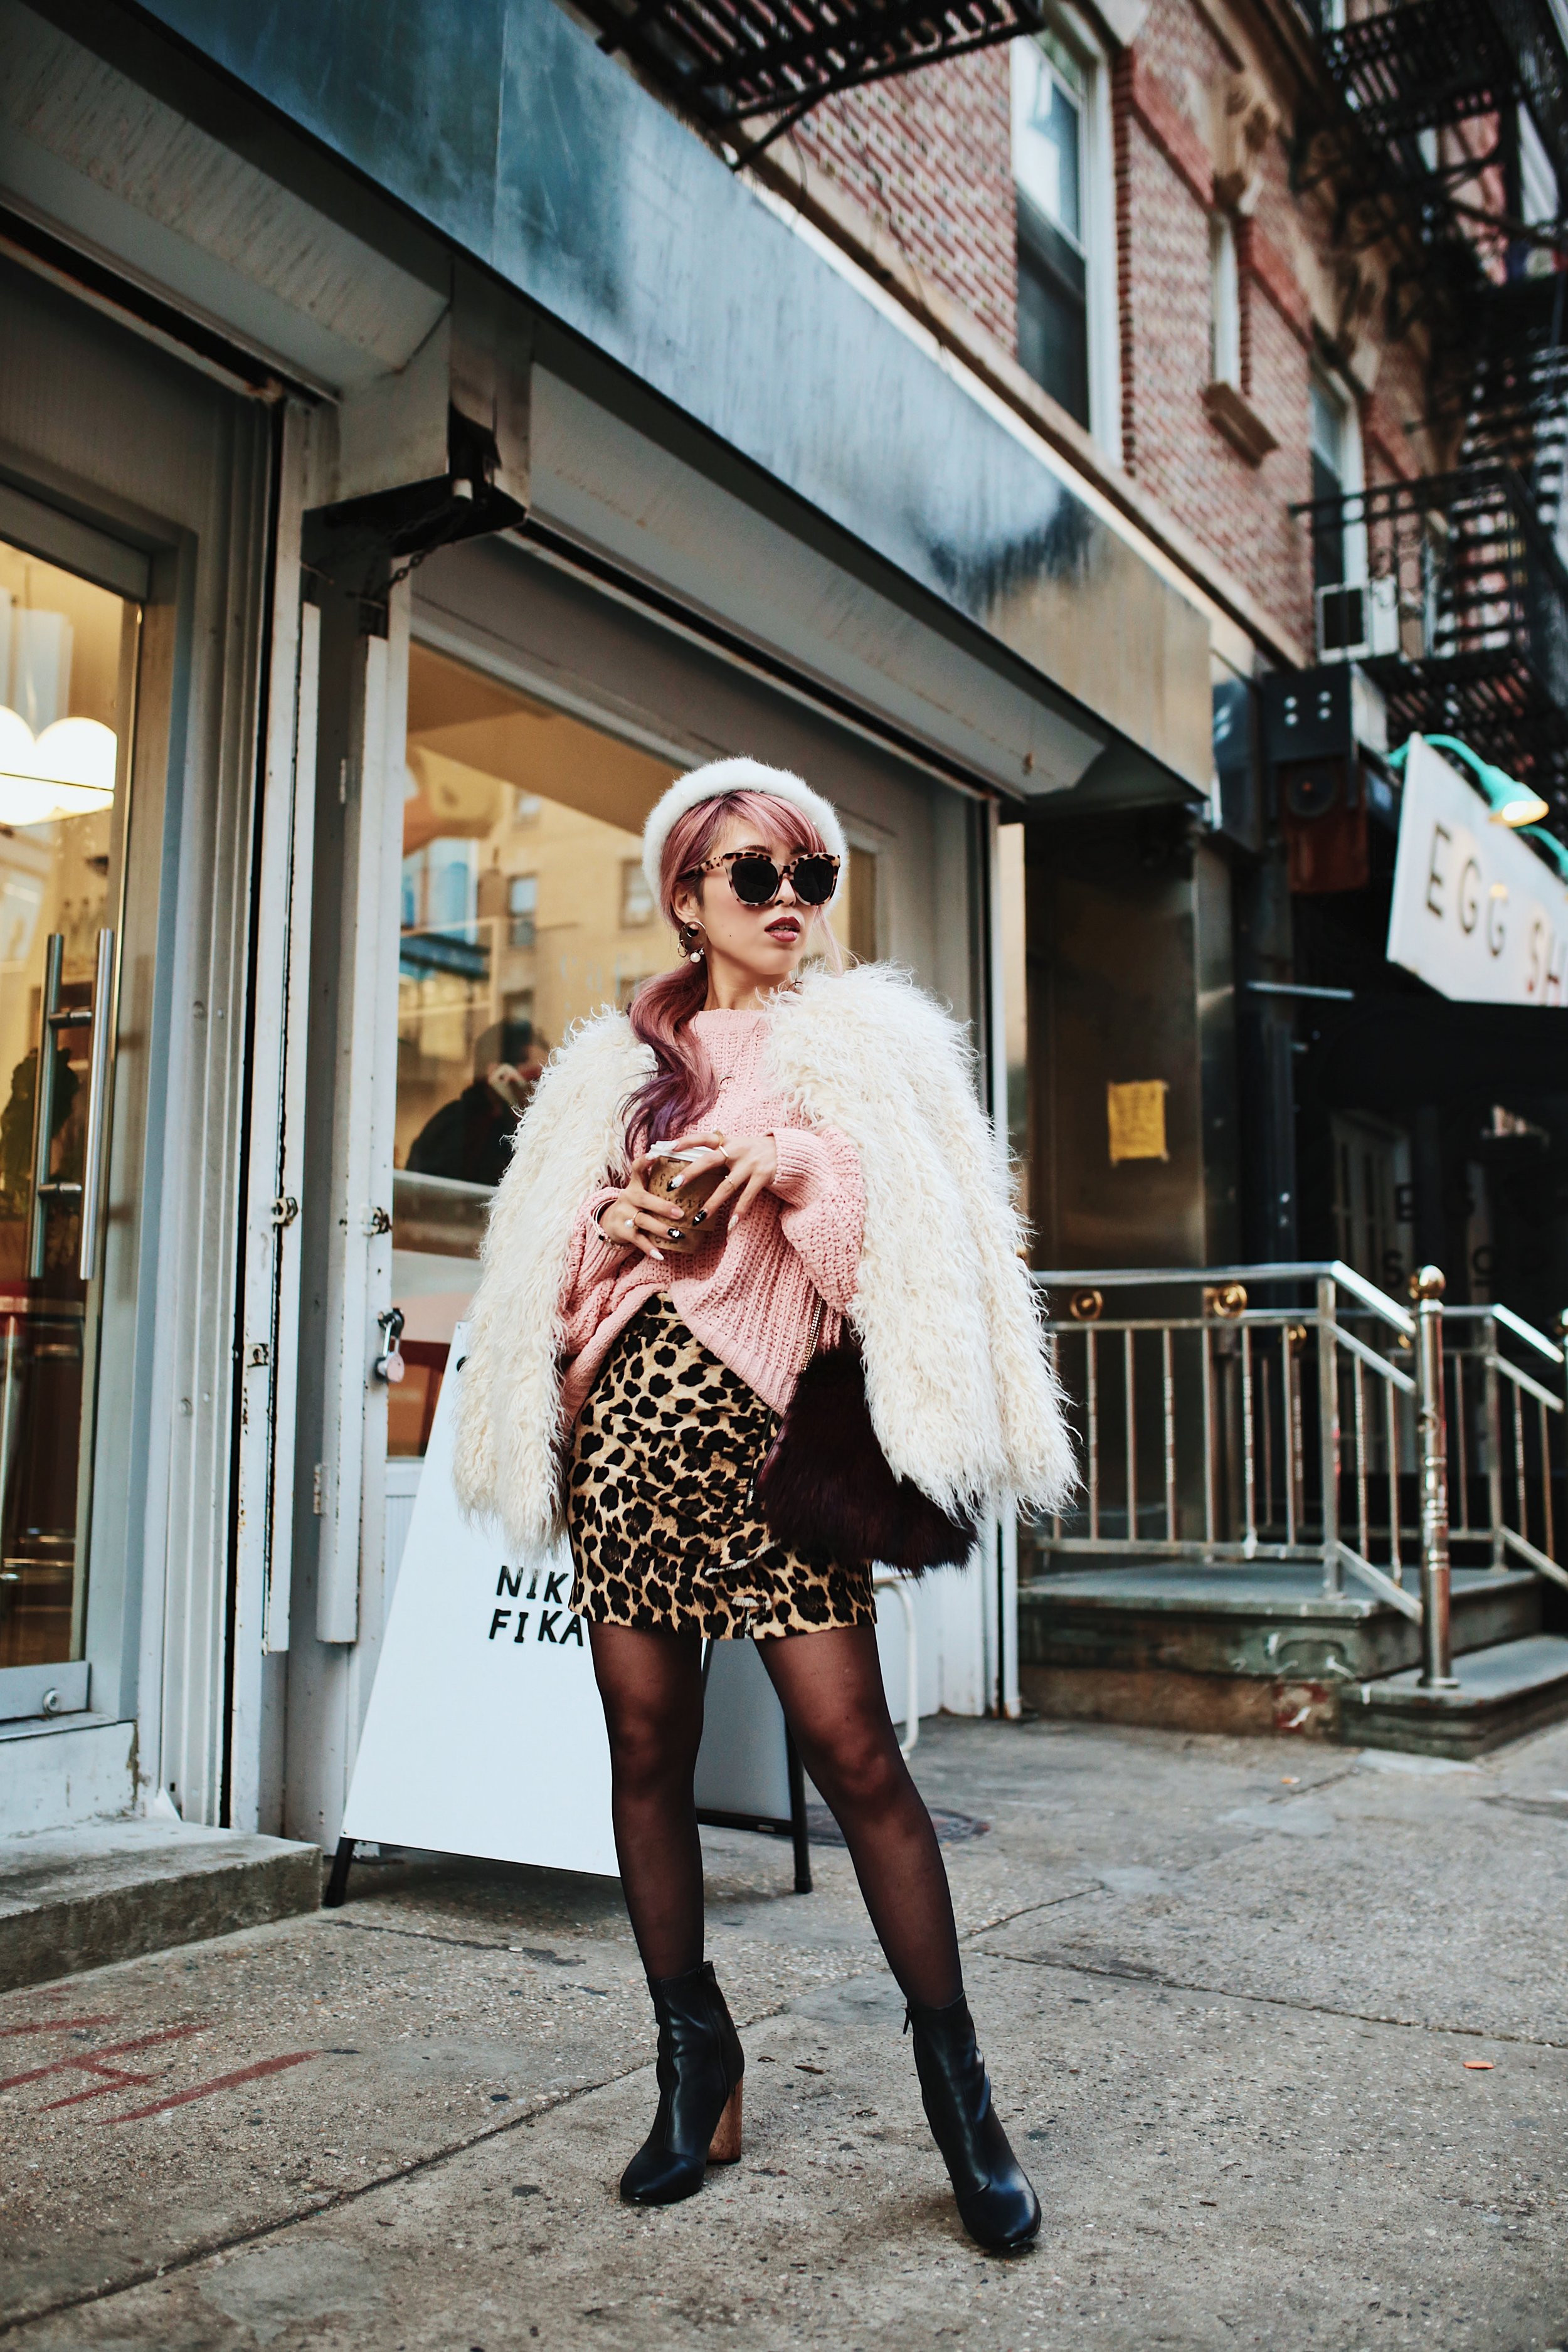 H&M Pink Sweater-Zara leopar prins mini skirt-H&M white shaggy coat-DVF fur bag-anthropologie white beret-Urban Outfitters Sunglasses-ALDO Ankle Boots-Mango Earrings-Aikas Love Closet-New York City-Pink Hair-Style Fashion Blogger-Seattle-Japanese_Petite fashion blogger 21